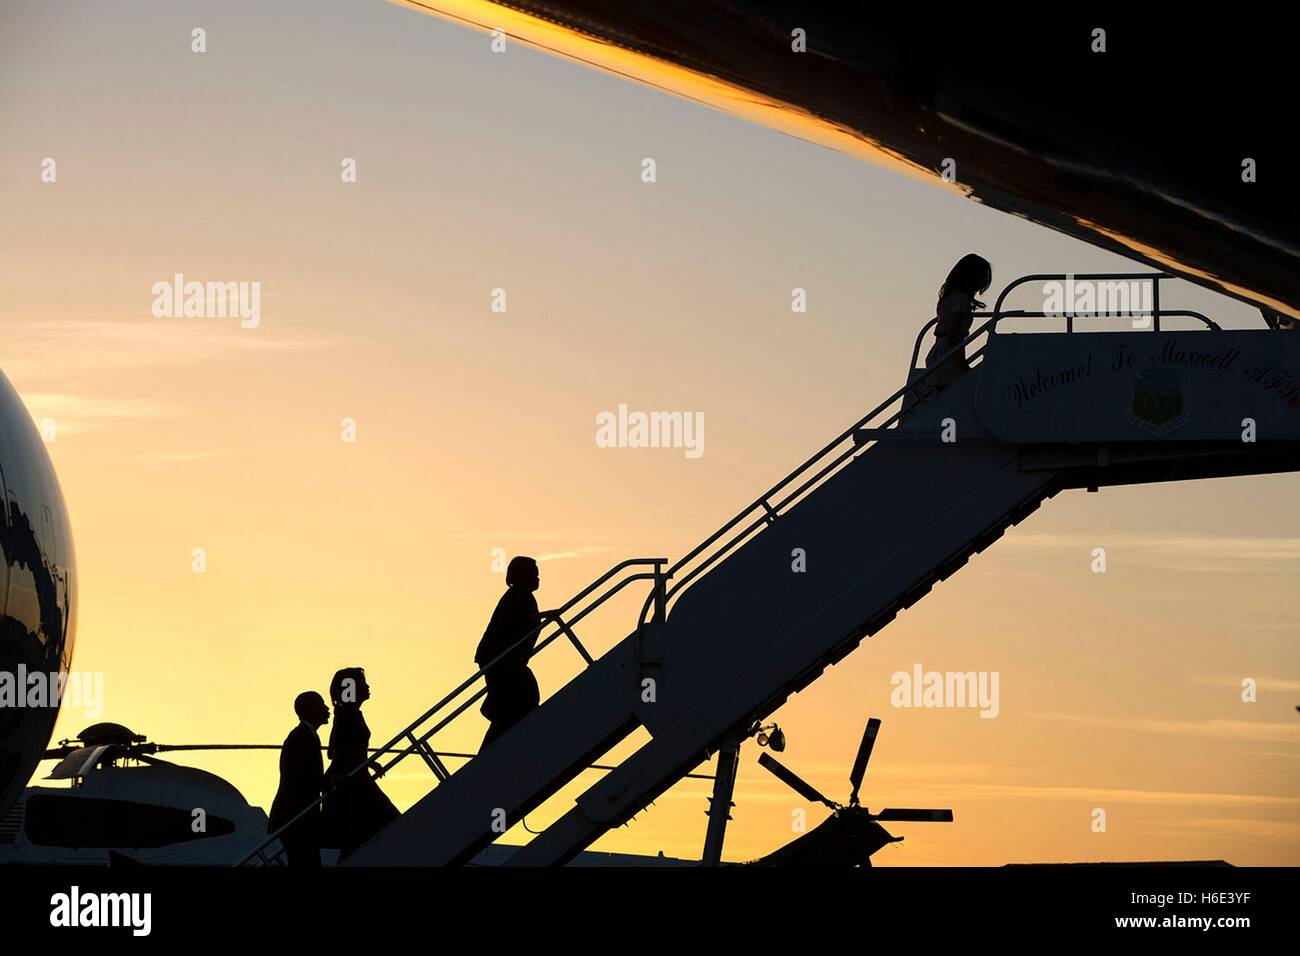 U.S. President Barack Obama and First Lady Michelle Obama board Air Force One at sunset at the Maxwell Air Force - Stock Image